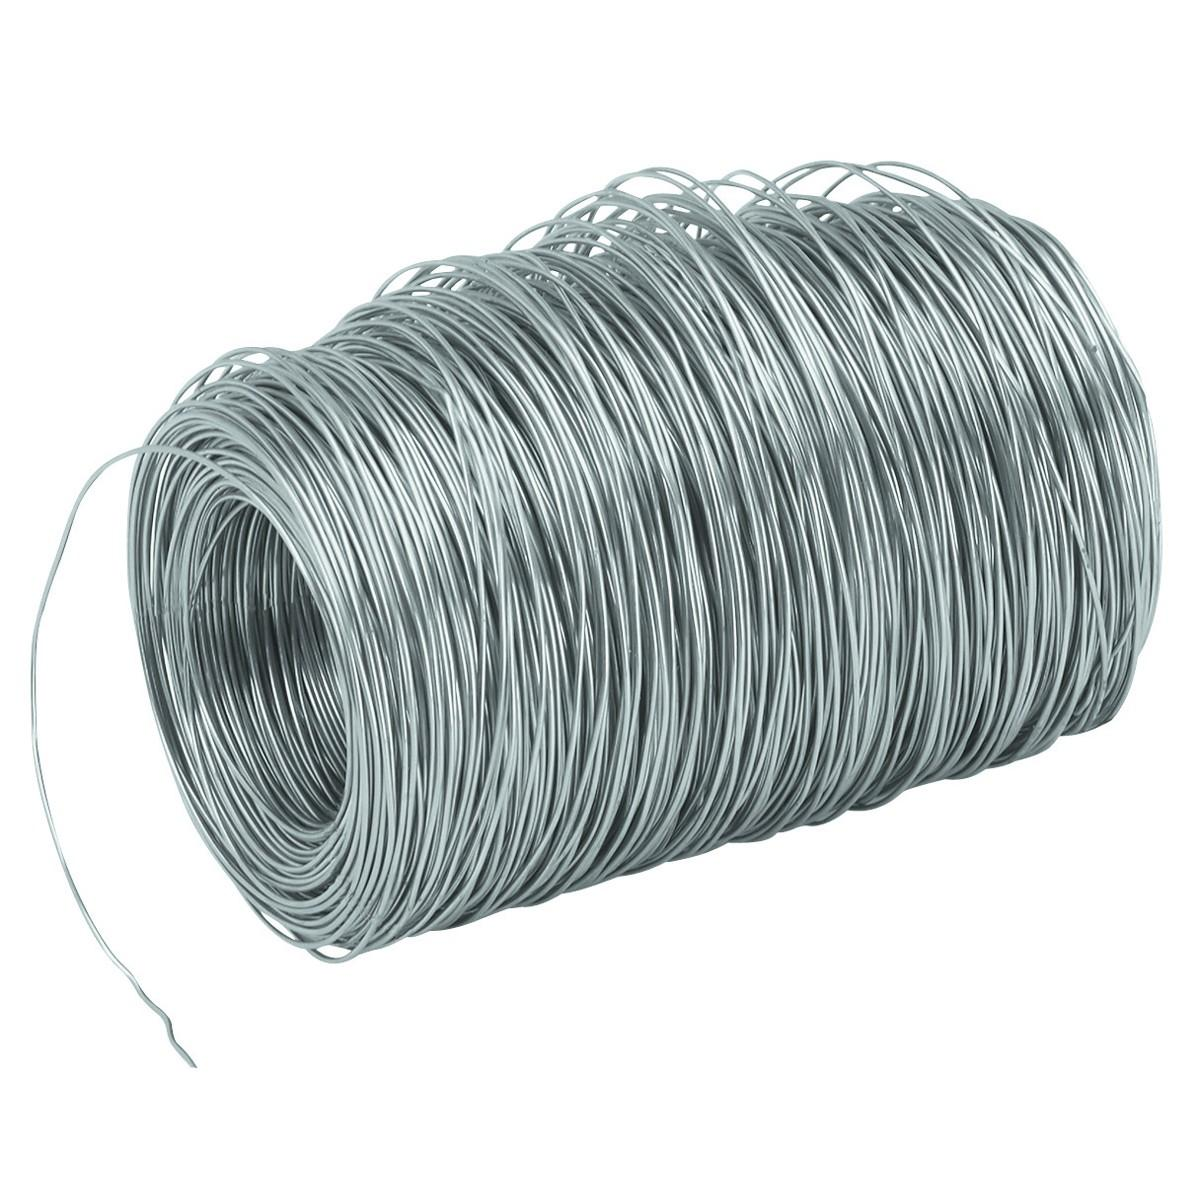 hight resolution of i want to create this coil